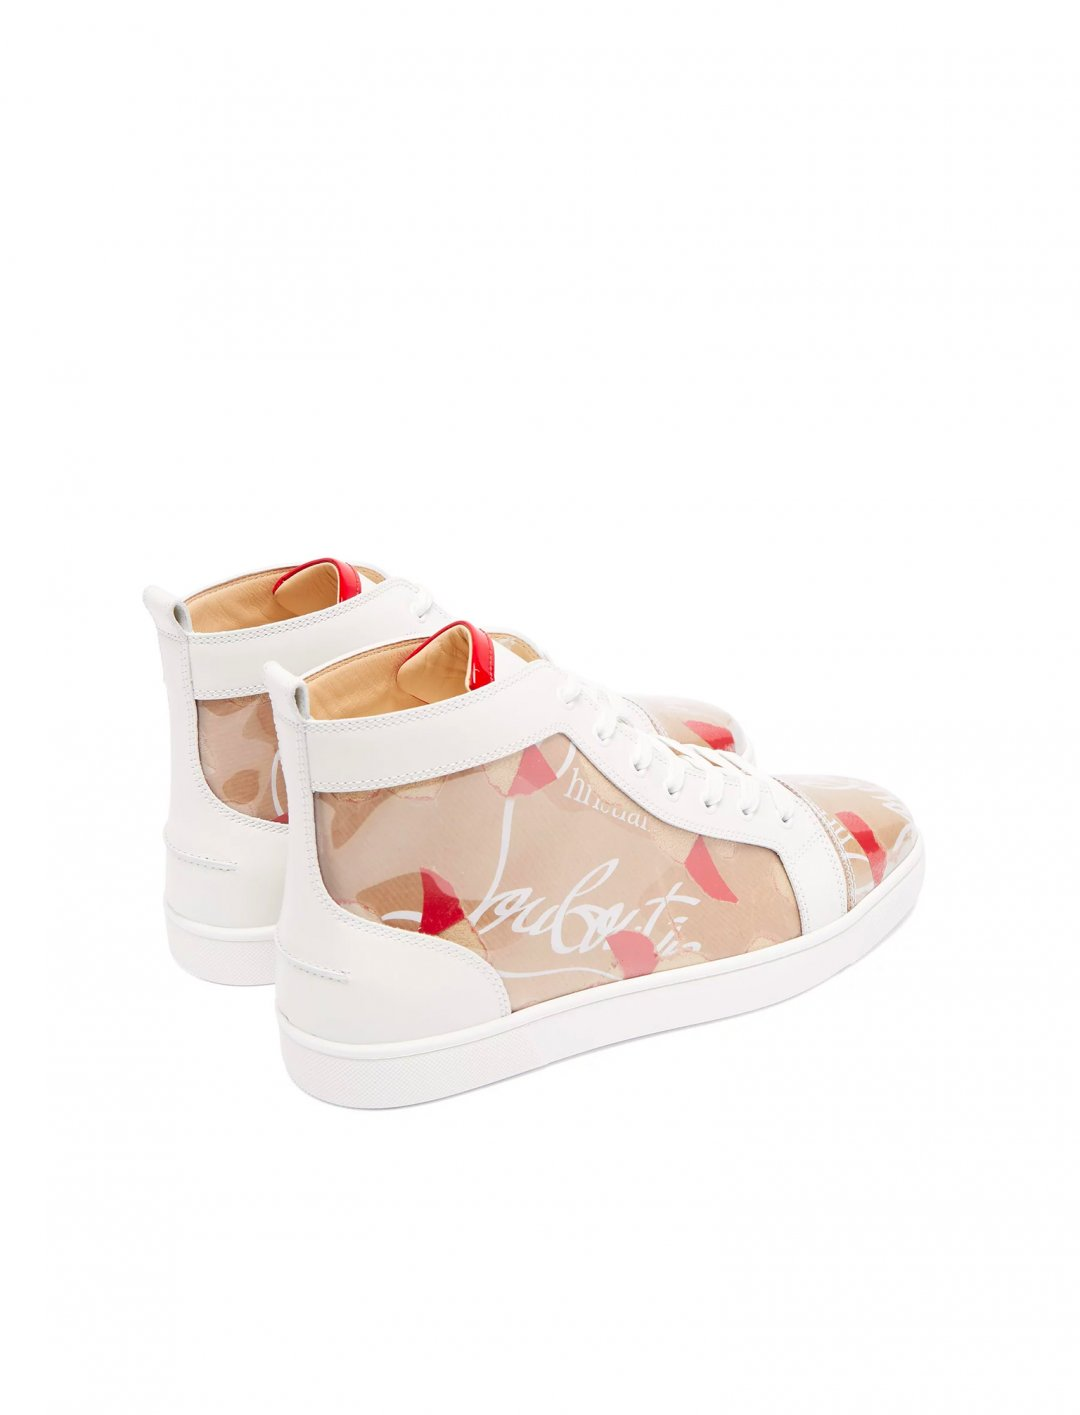 "Not3s' Logo High-Top Trainers {""id"":12,""product_section_id"":1,""name"":""Shoes"",""order"":12} Christian Louboutin"